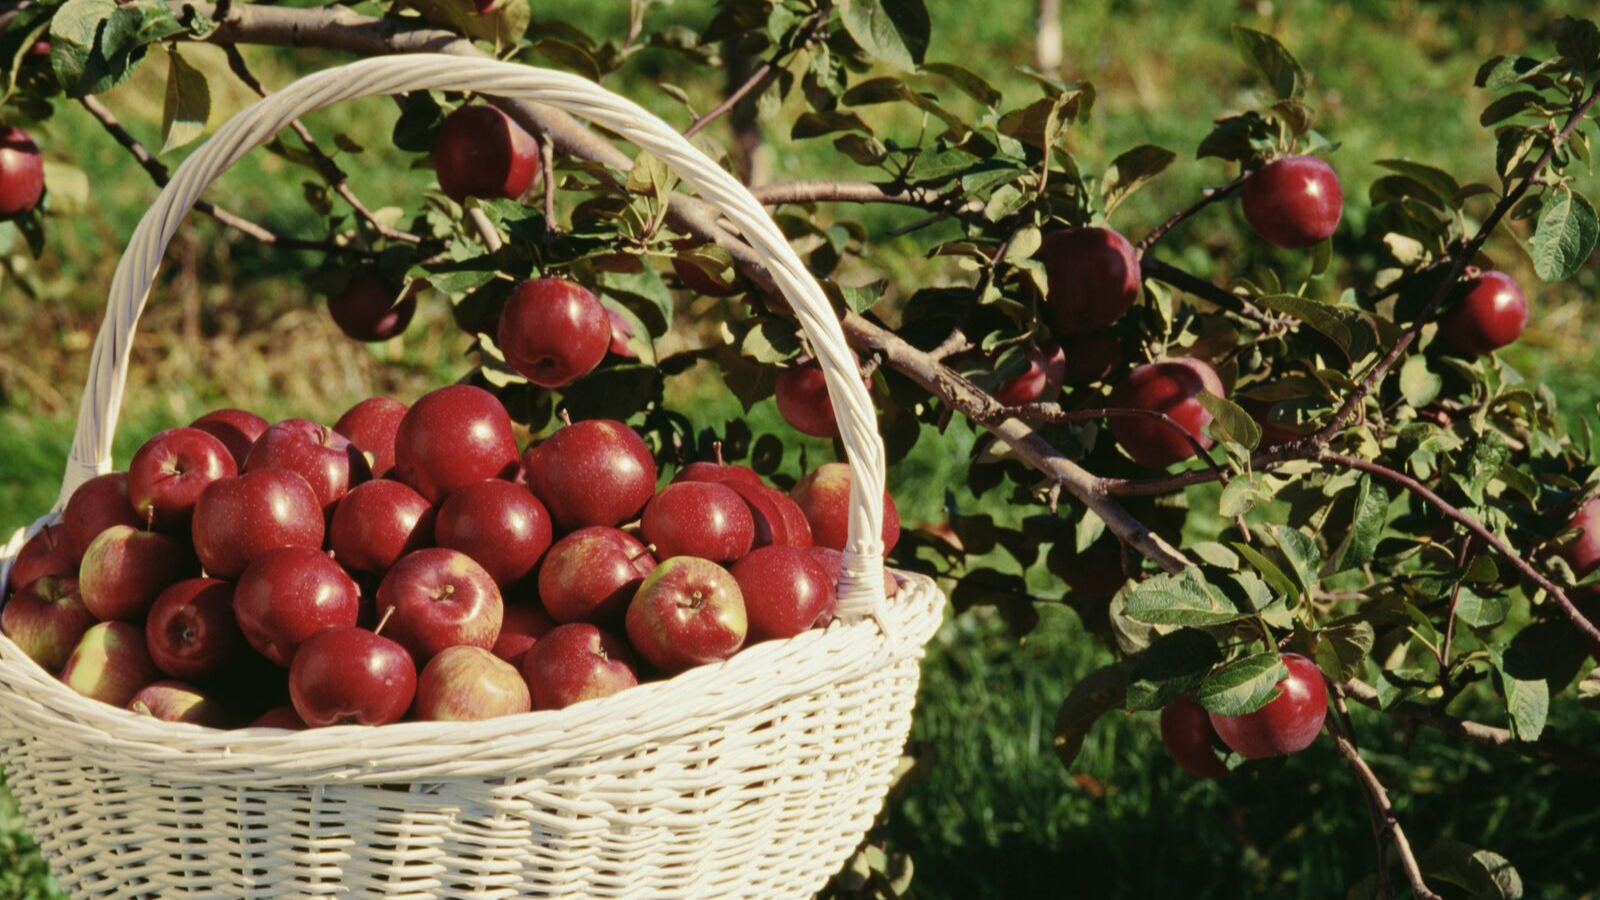 basket of apples that have been picked in an orchard